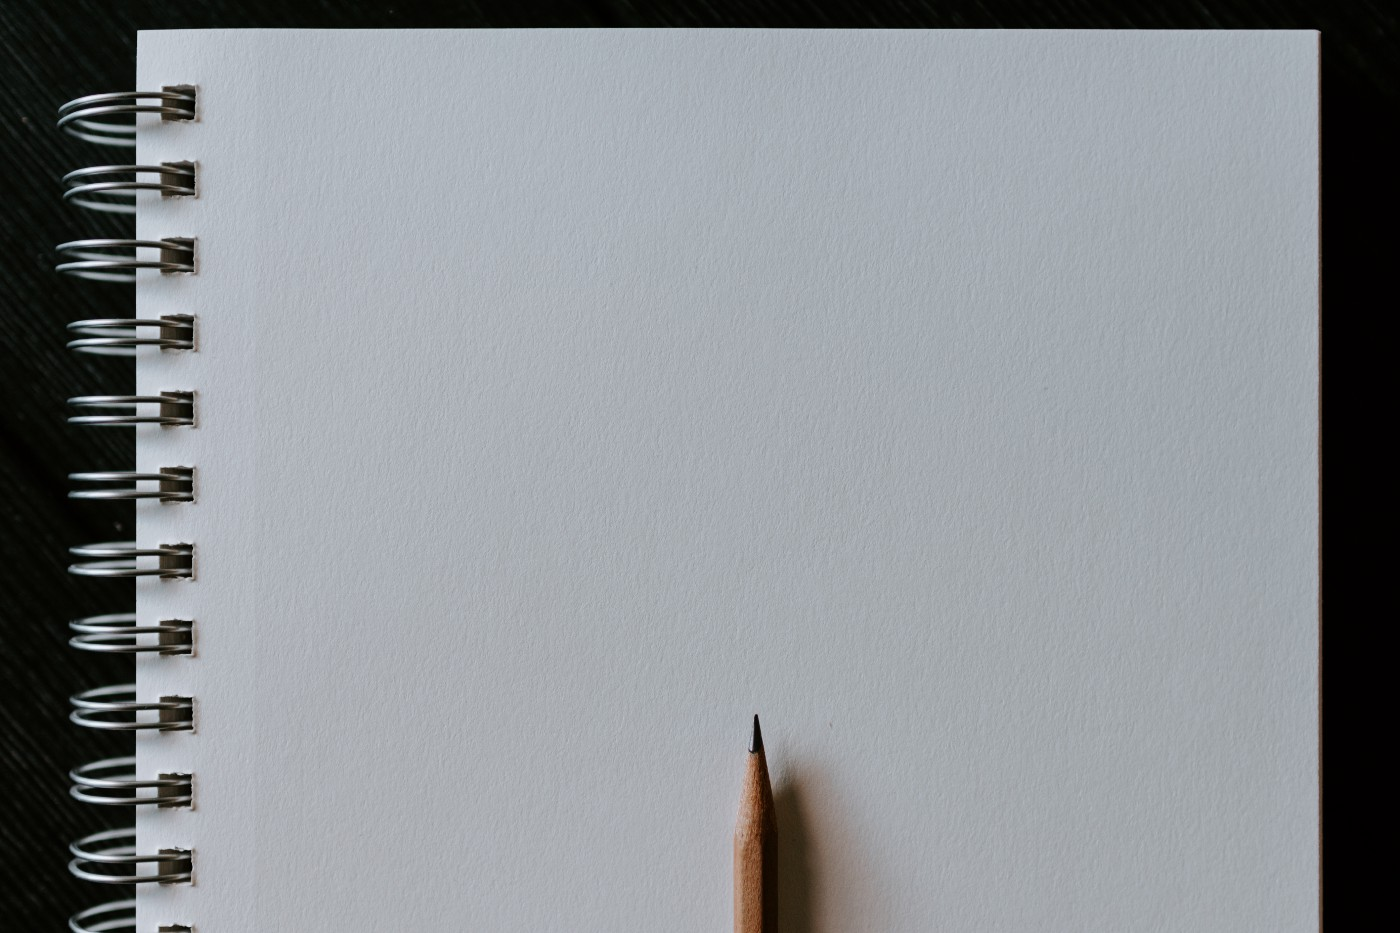 A blank page of a notebook with a pencil.